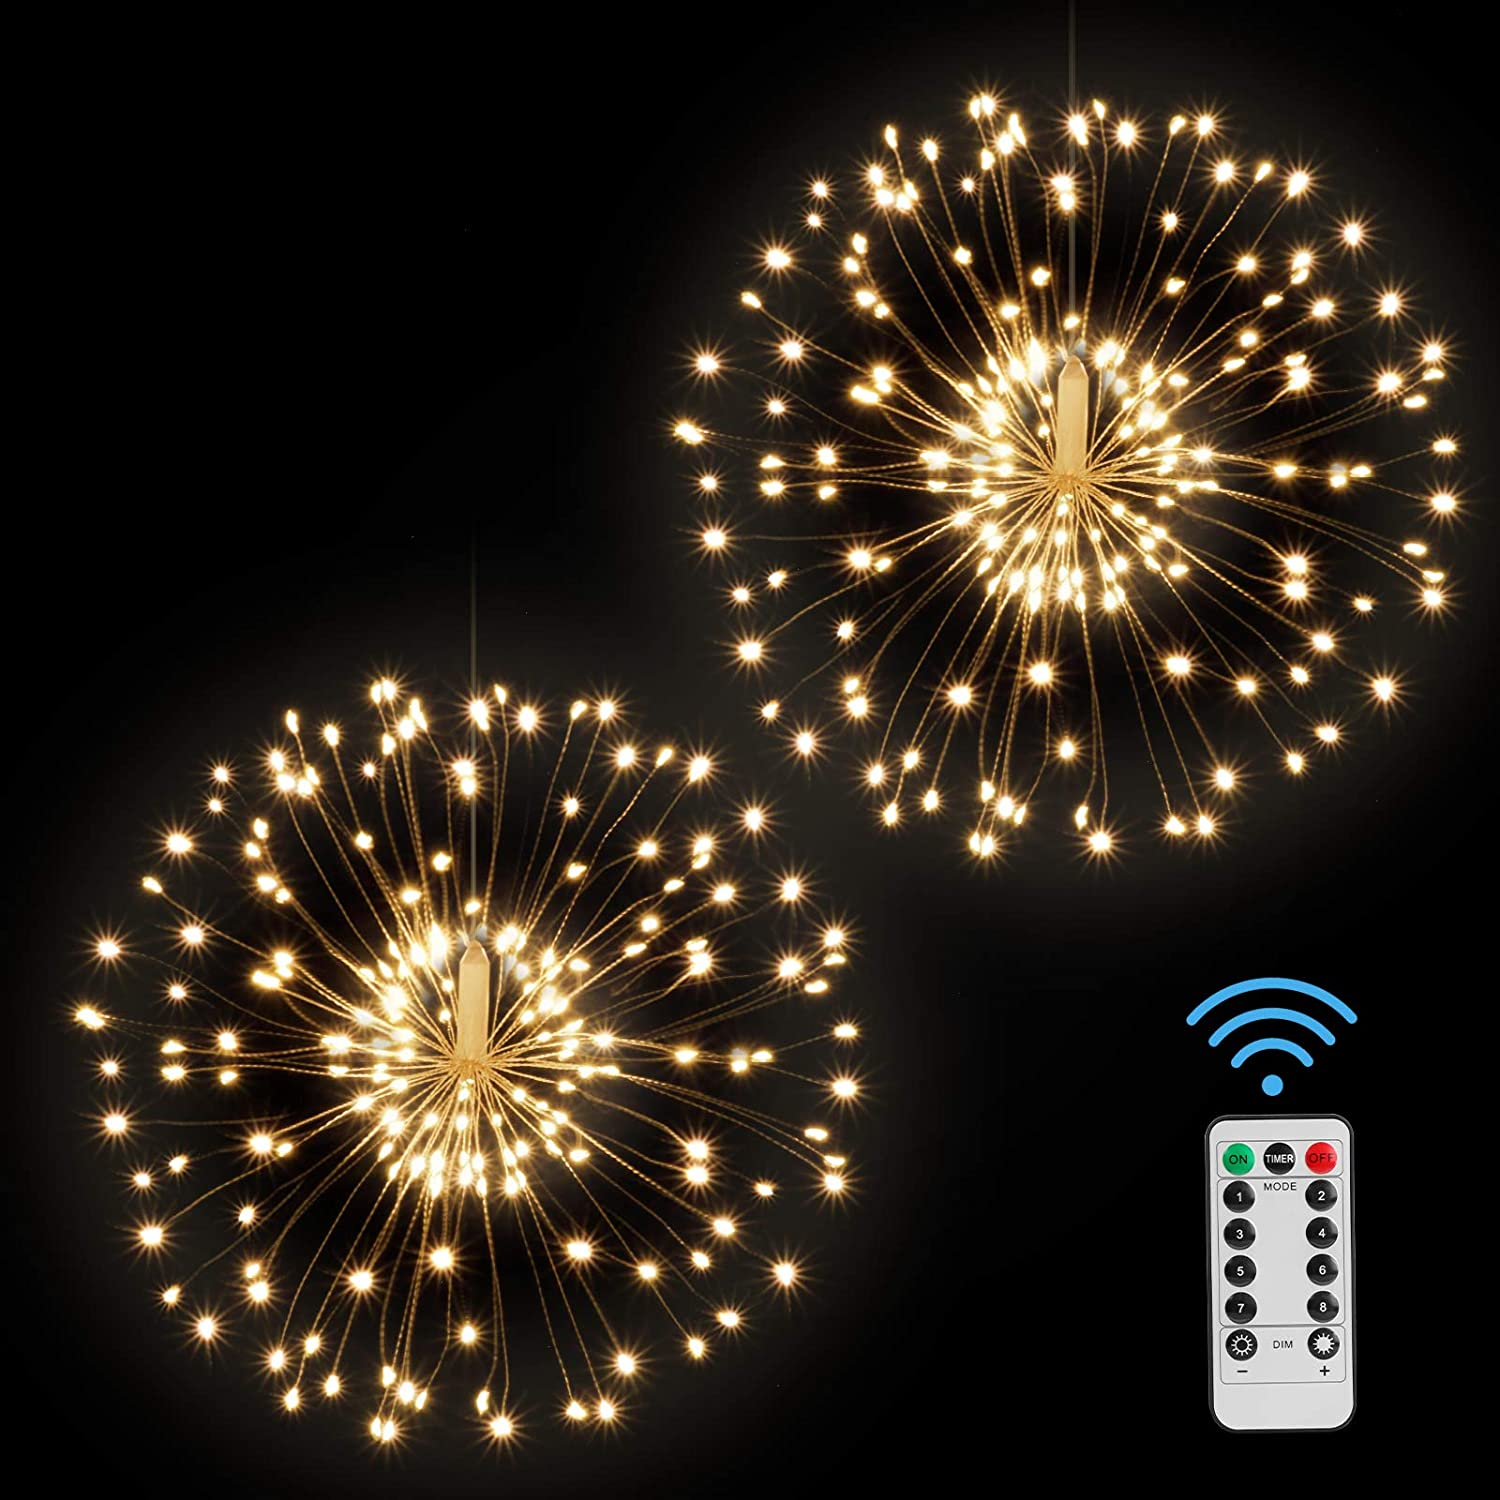 2 Pack Firework Lights LED Starburst Lights,120 Led 8 Modes Dimmable Copper Wire String Lights with Remote Control for Christmas Party Decoration